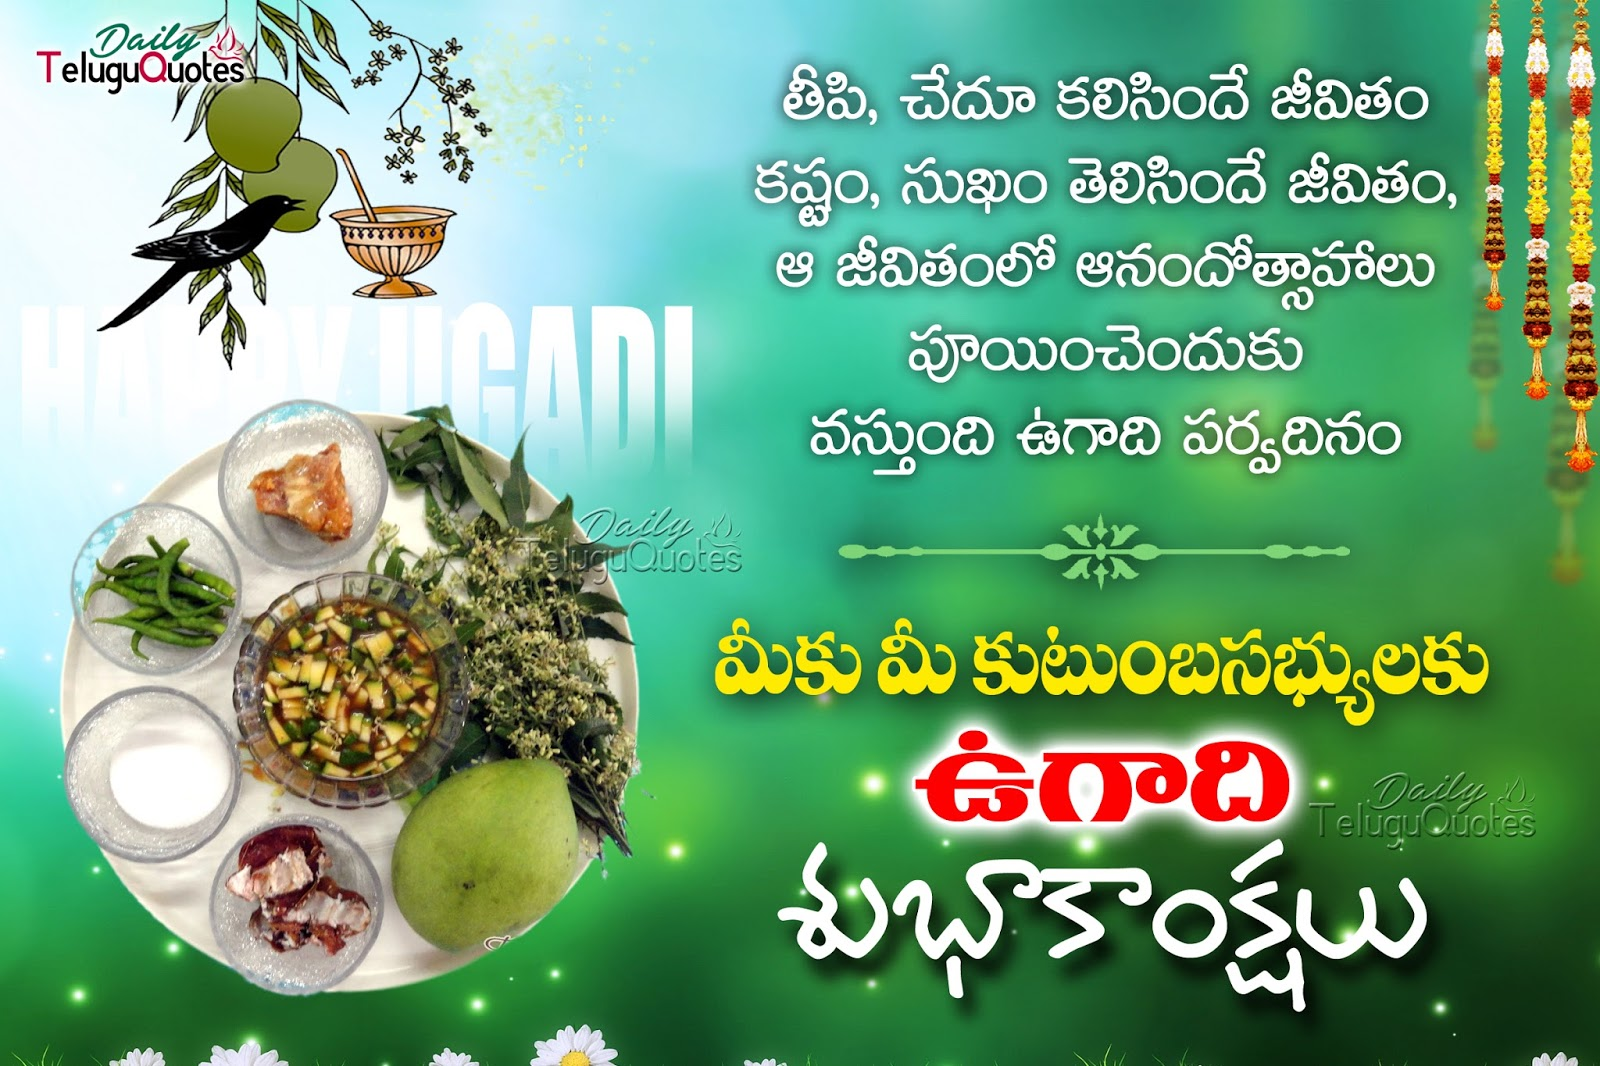 Happy Ugadi Telugu Wishes Quotes Images Free For Facebook